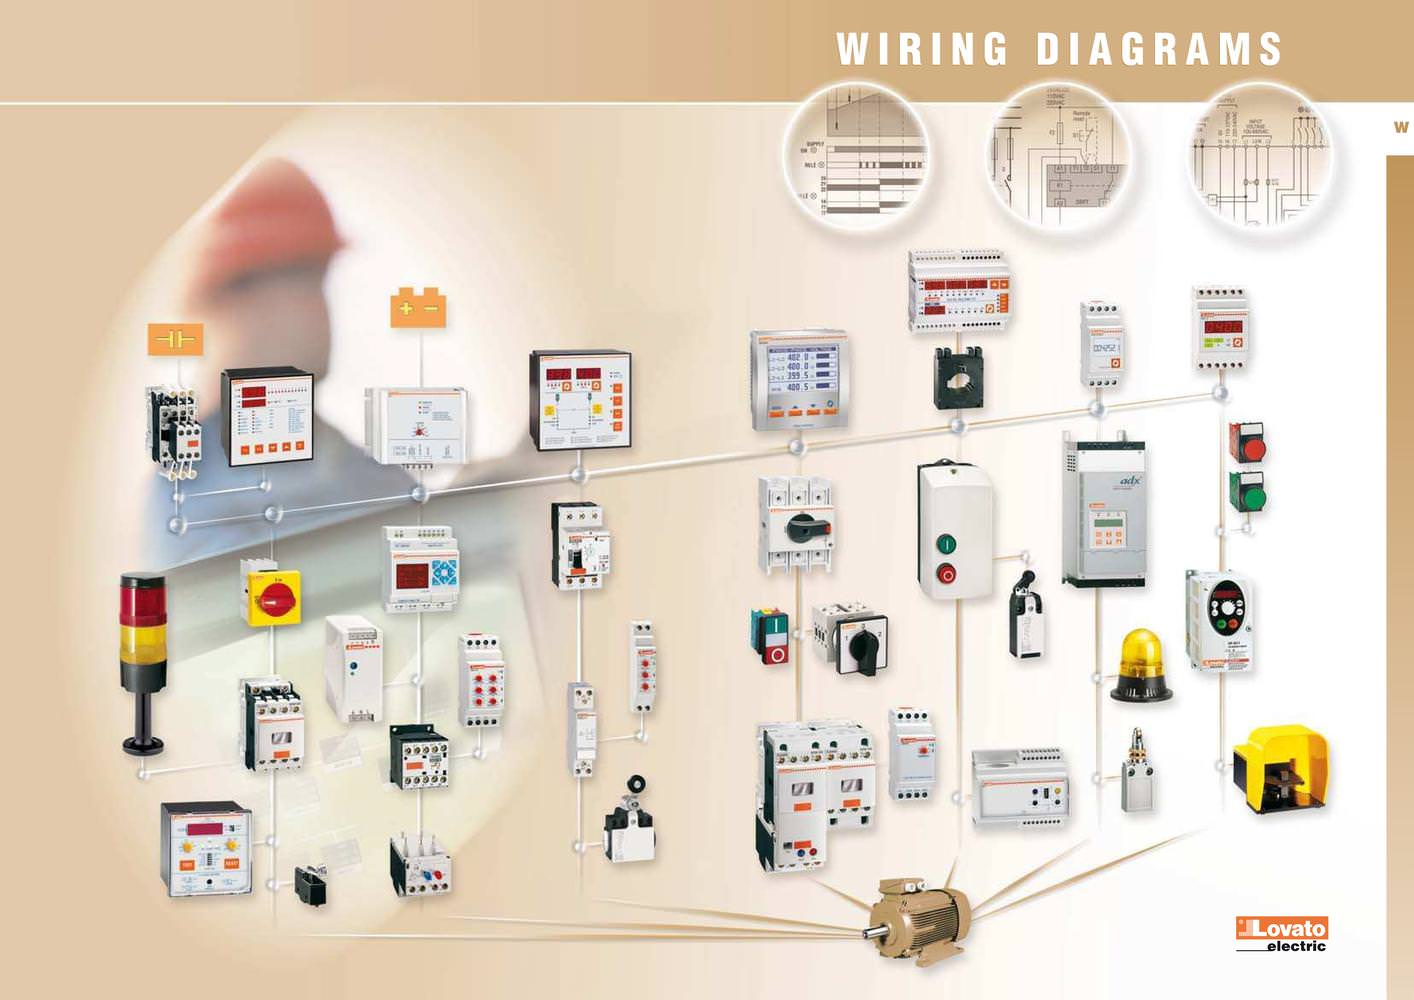 Wiring Diagrams Lovato Electric Pdf Catalogue Technical Control Circuit Motor Repalcement Parts And Diagram 1 39 Pages